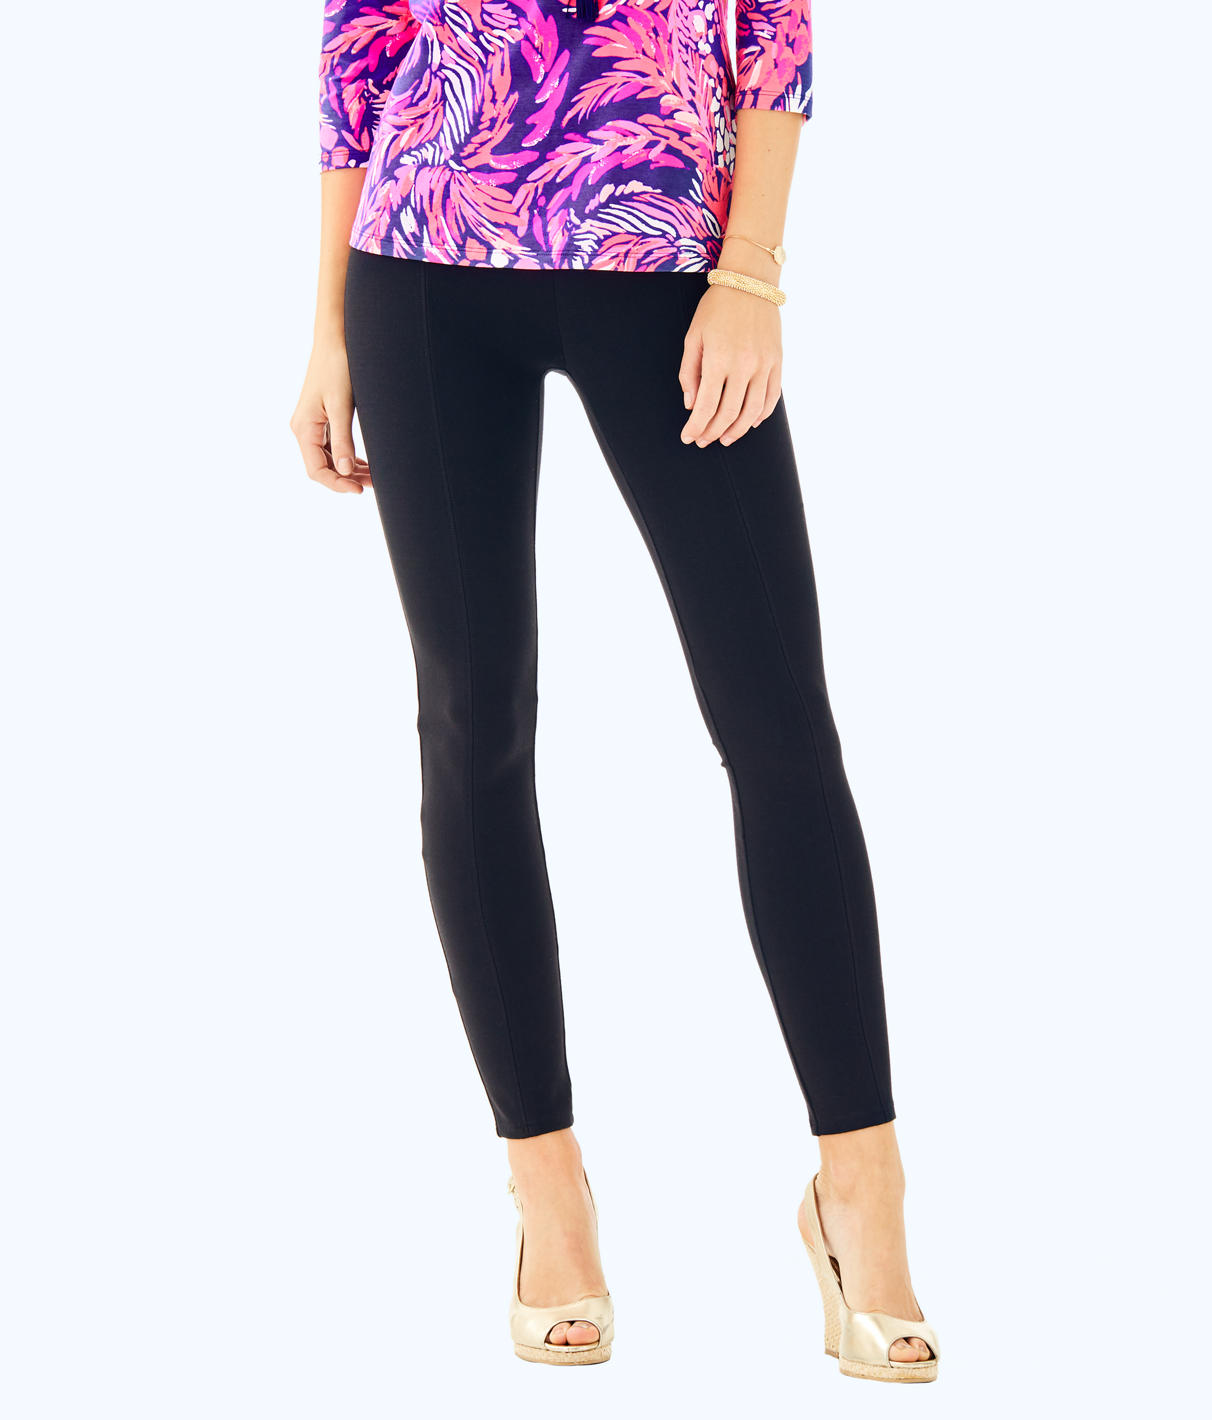 Lilly Pulitzer Lilly Pulitzer Womens 27